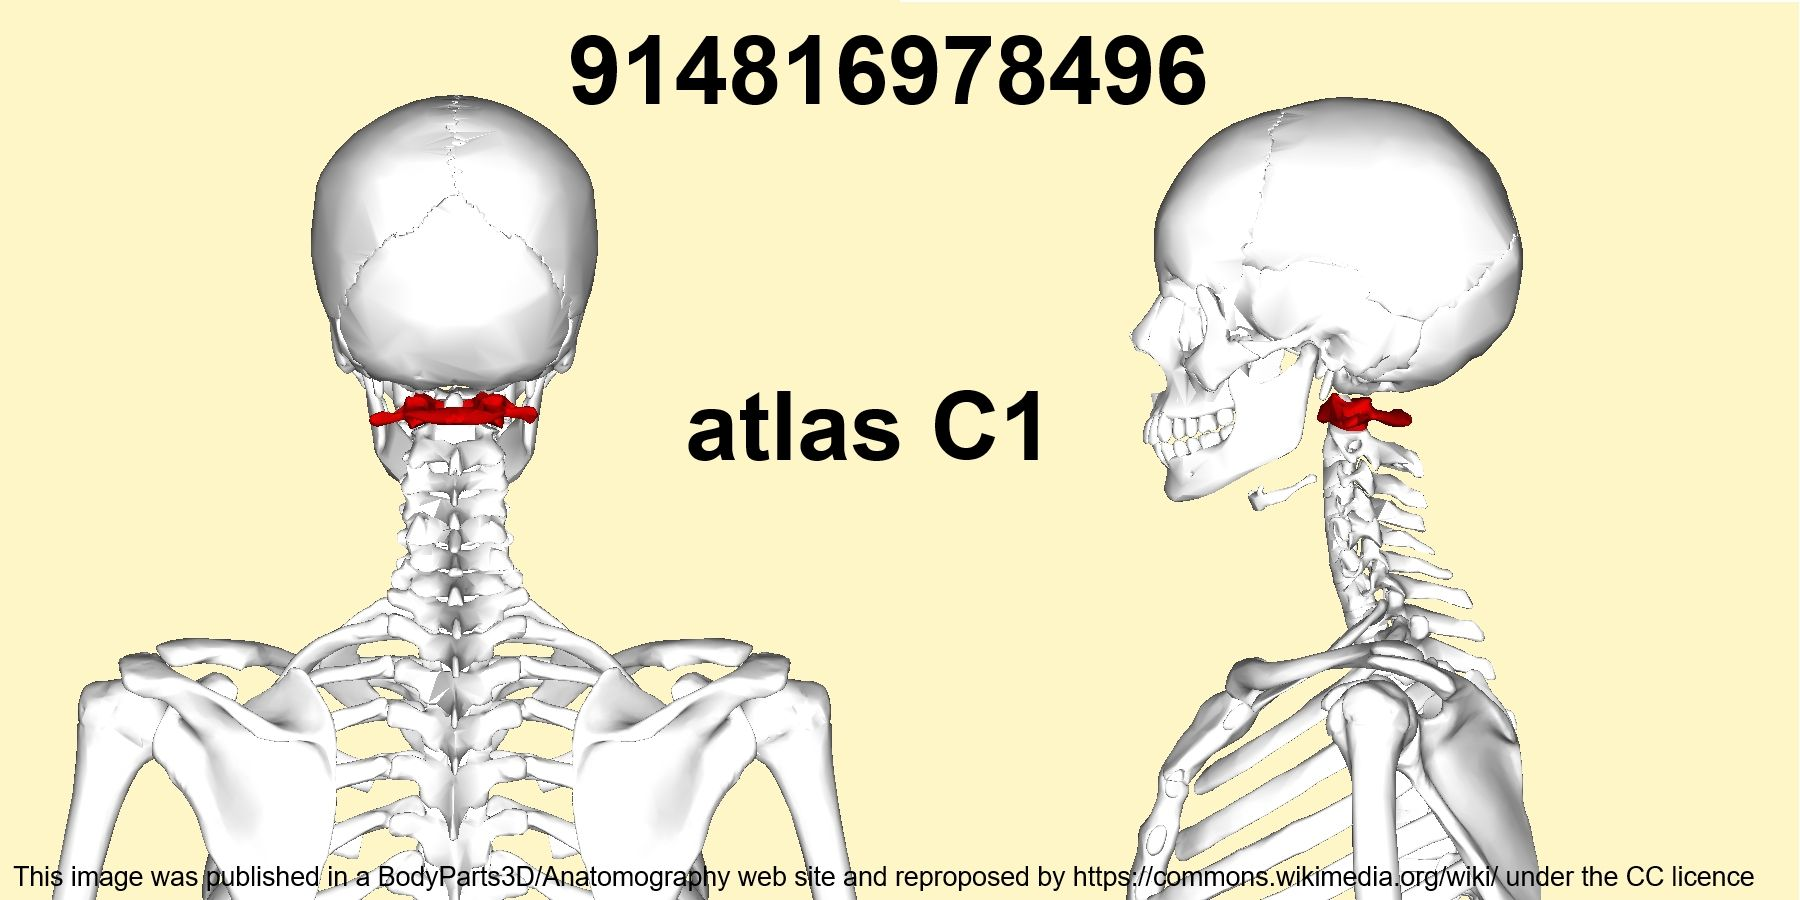 In anatomy, the atlas (C1) is the most superior (first) cervical ...